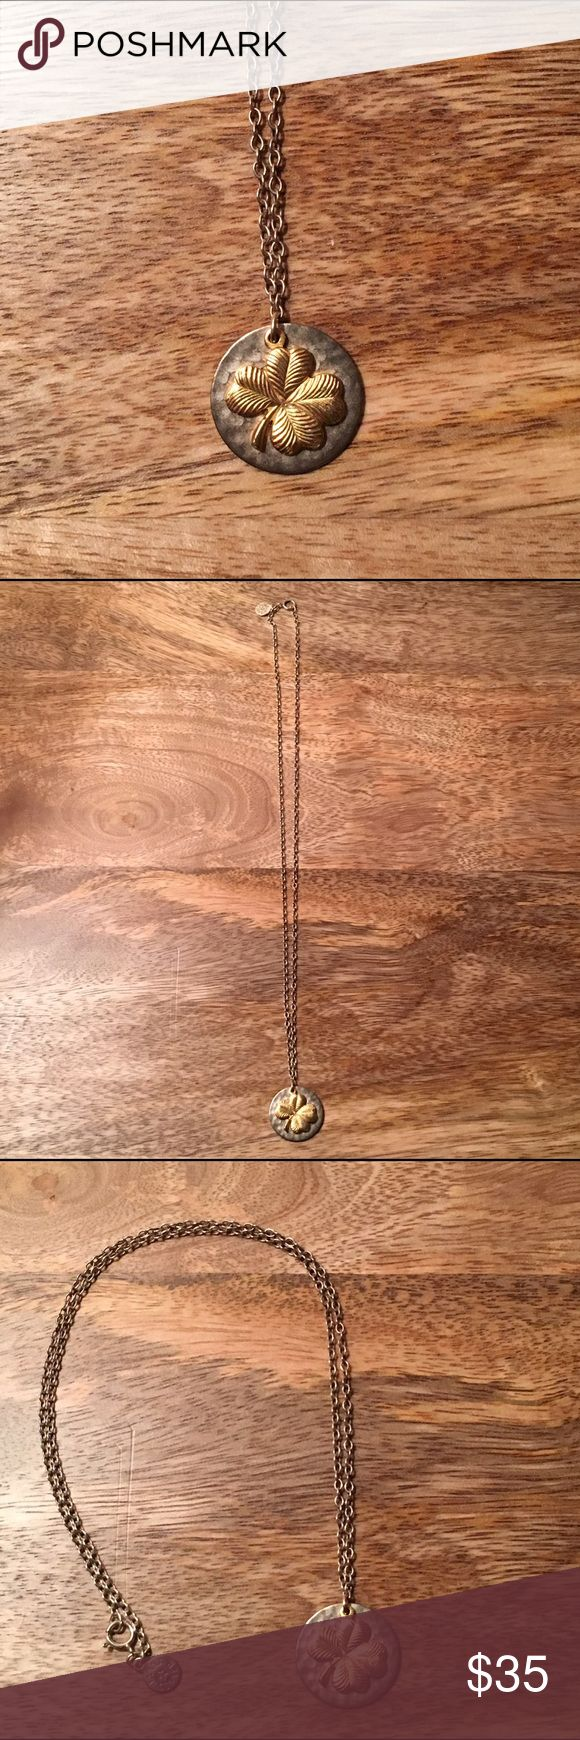 "Four Leaf Clover Necklace Gold Four Leaf Clover on a Silver Disc. 16"" chain. Jewelry Necklaces"